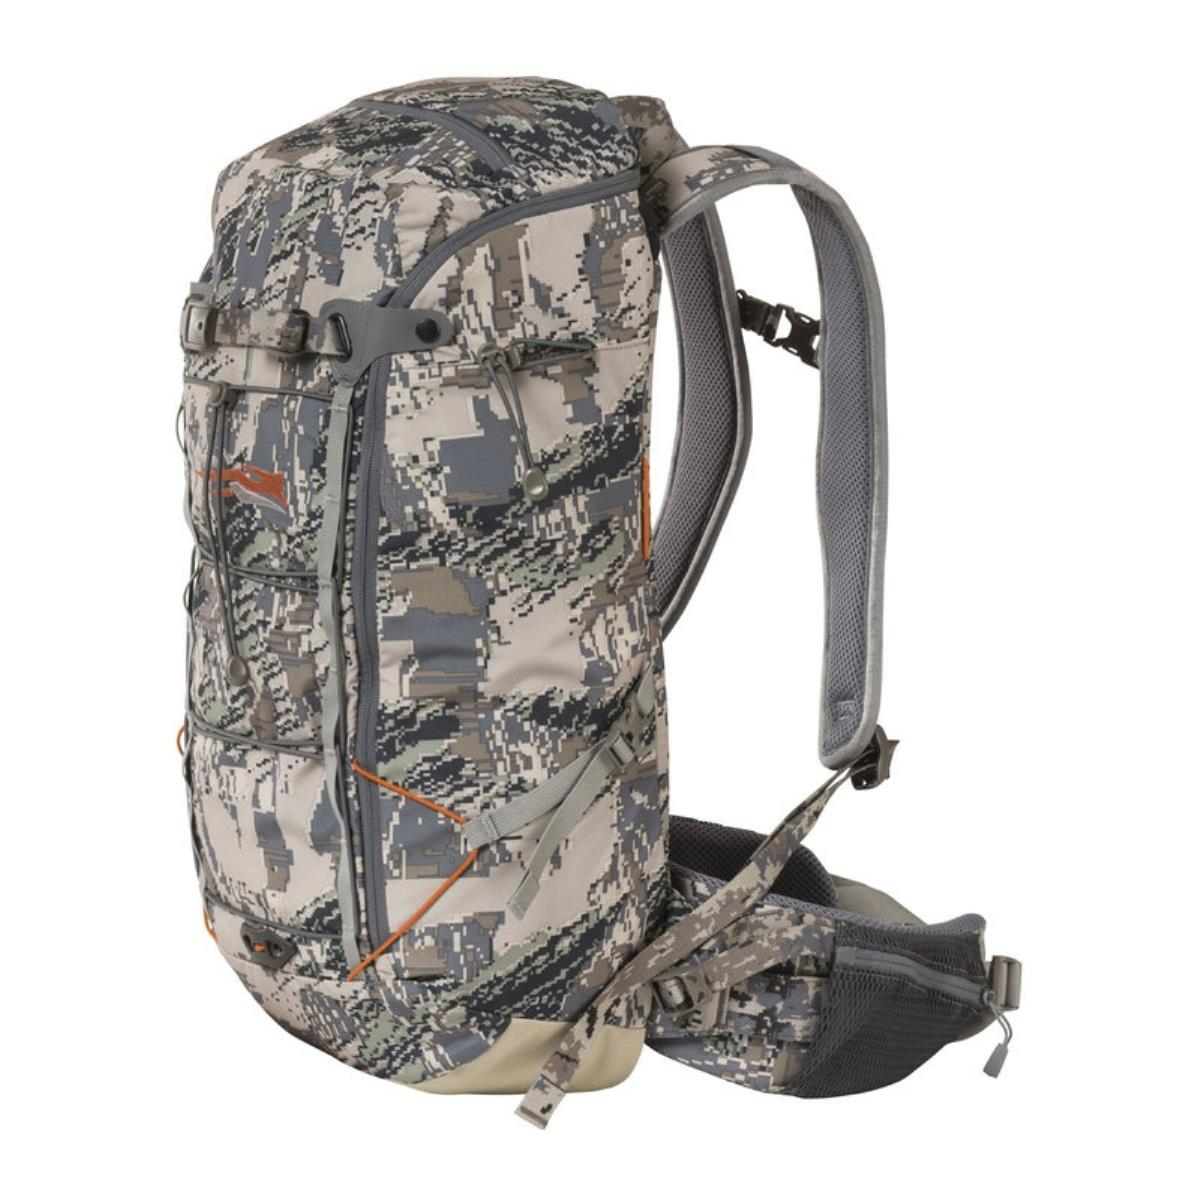 Backpack Ascent 12 Col. OPTIFADE Open Country P. Osfa Sitka 40036-ob-osfa